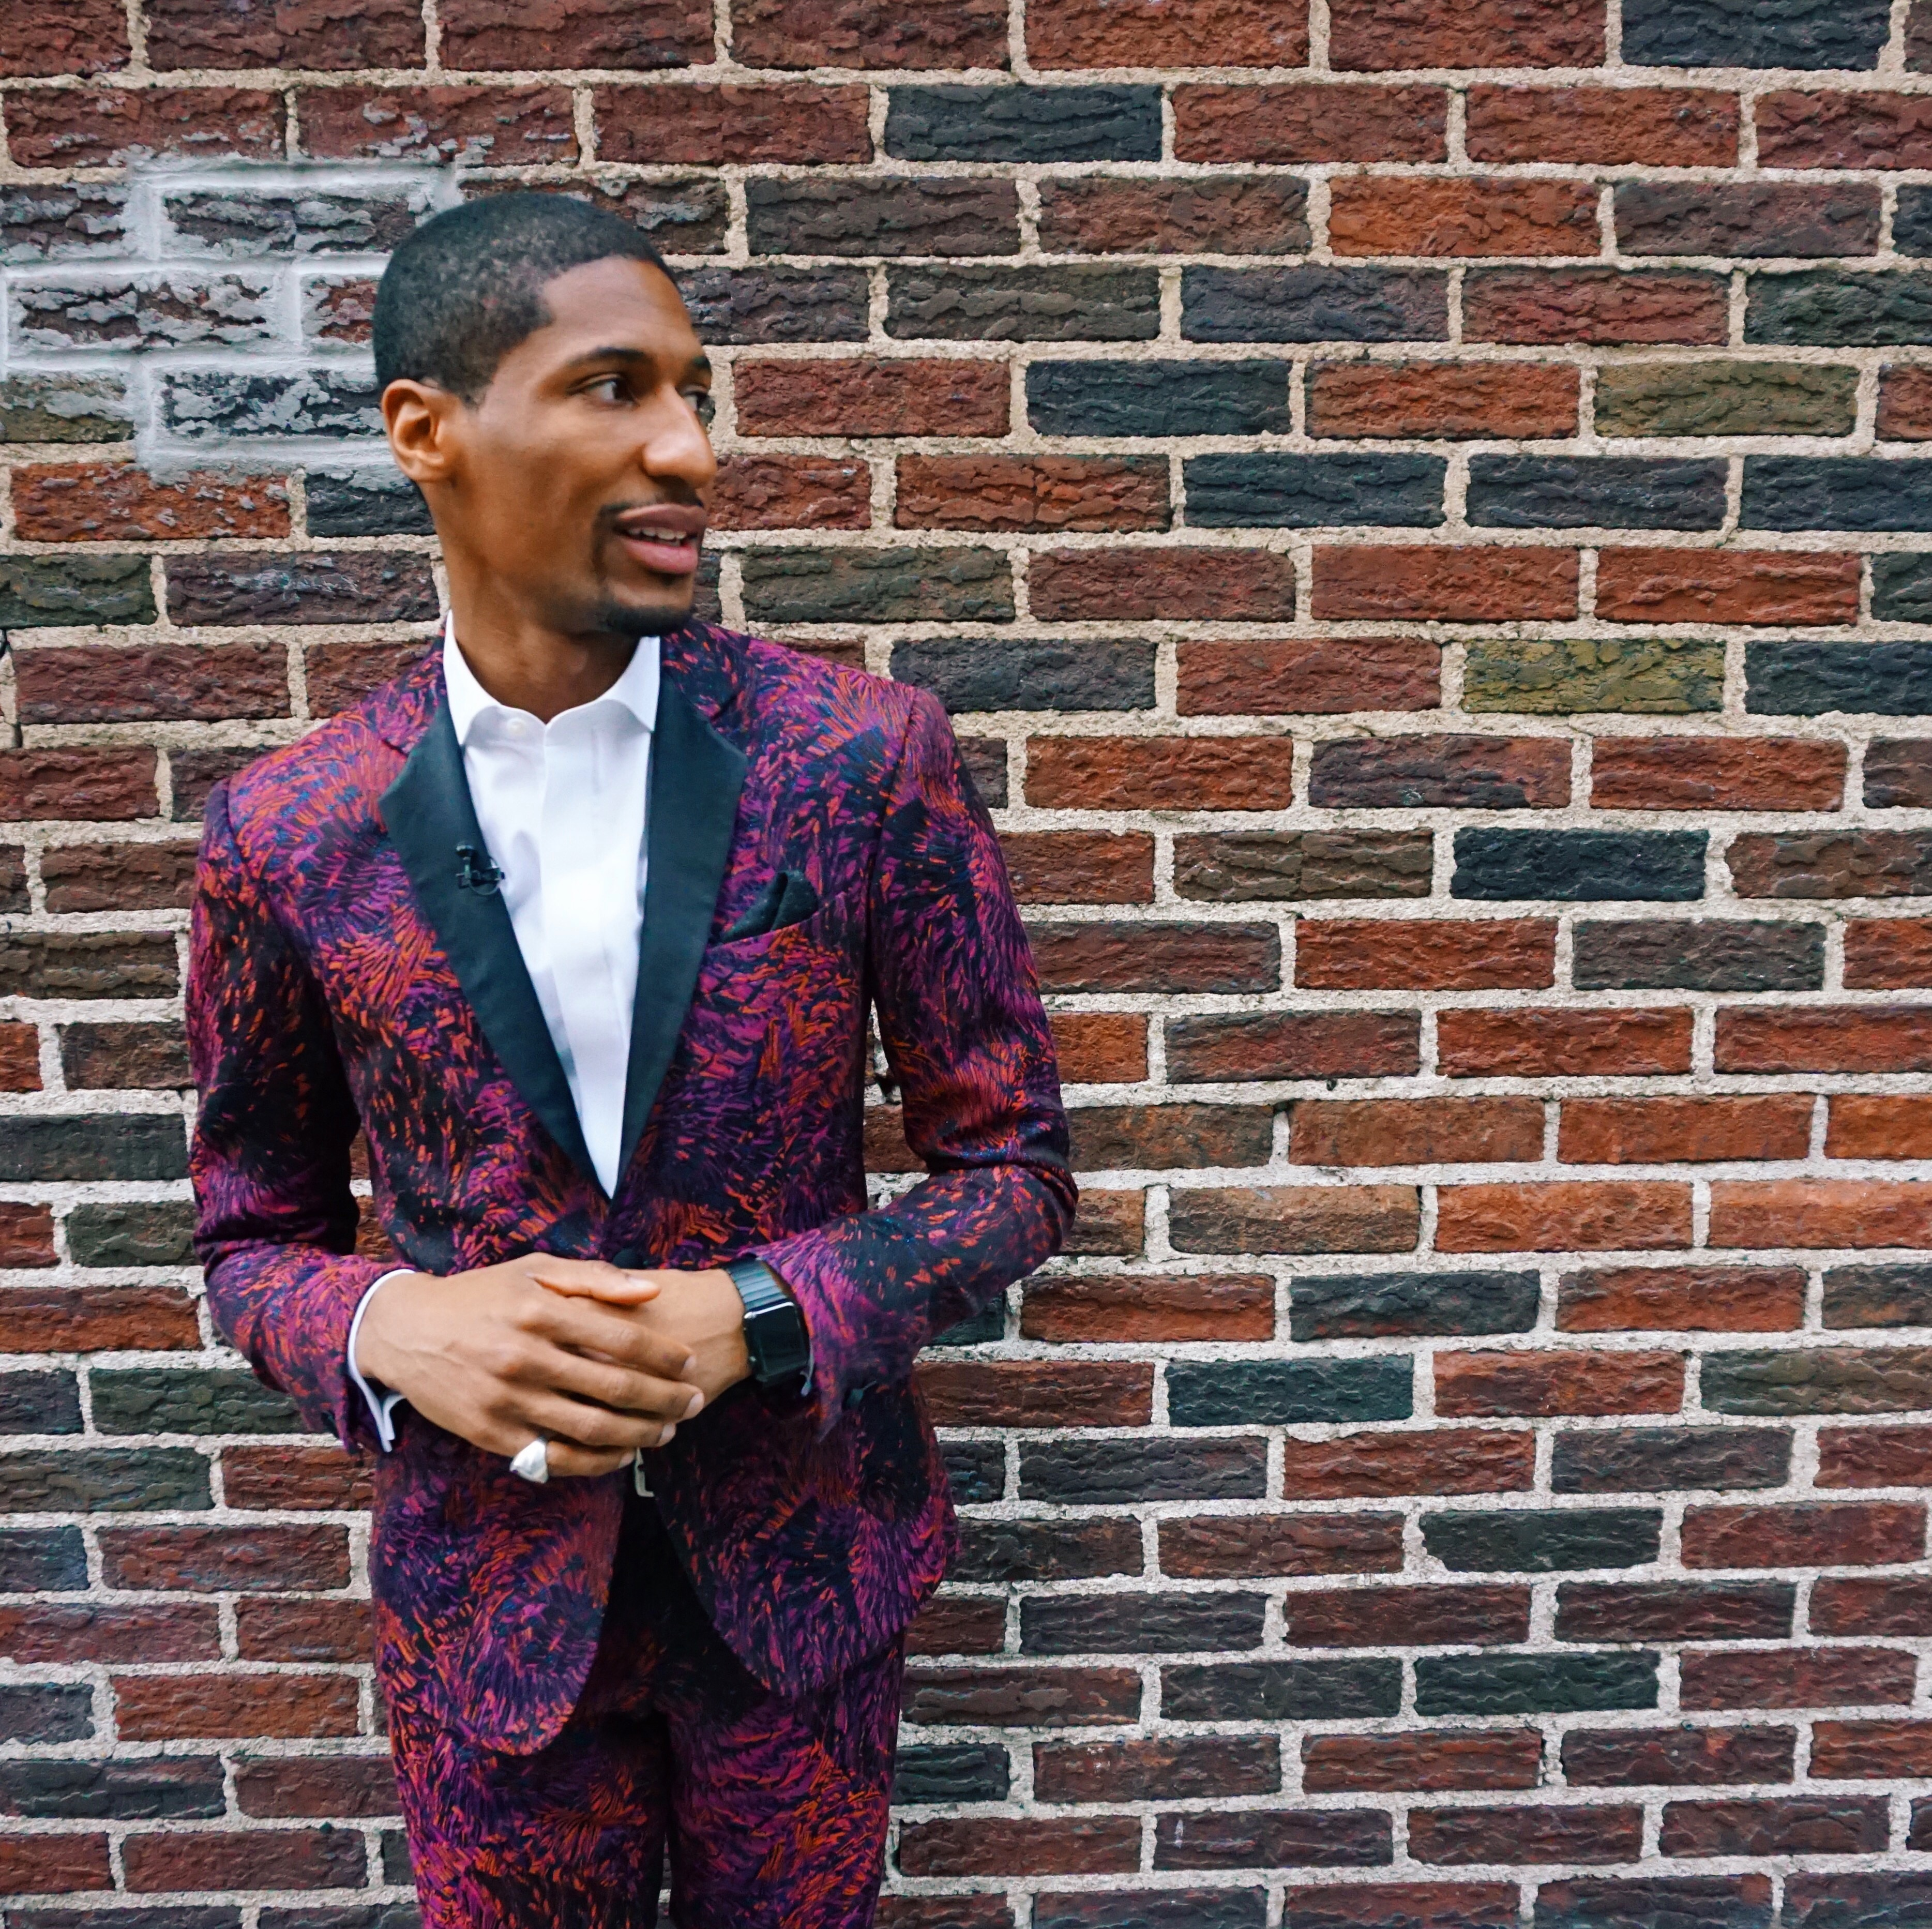 Jon Batiste Of Stephen Colbert S Late Show Joins Lineup Of Performers For The Stewart S